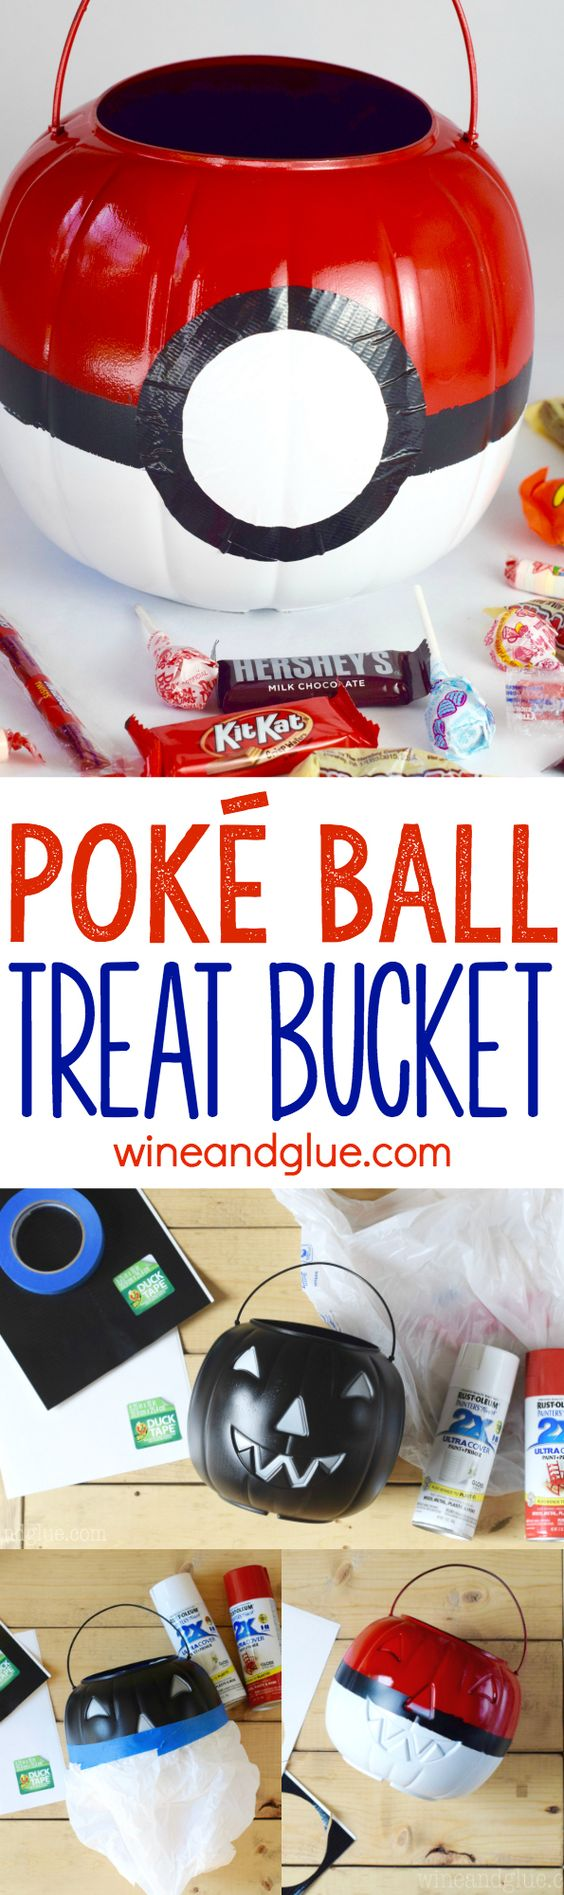 Poke Ball Treat Bucket for Pokemon Costume.